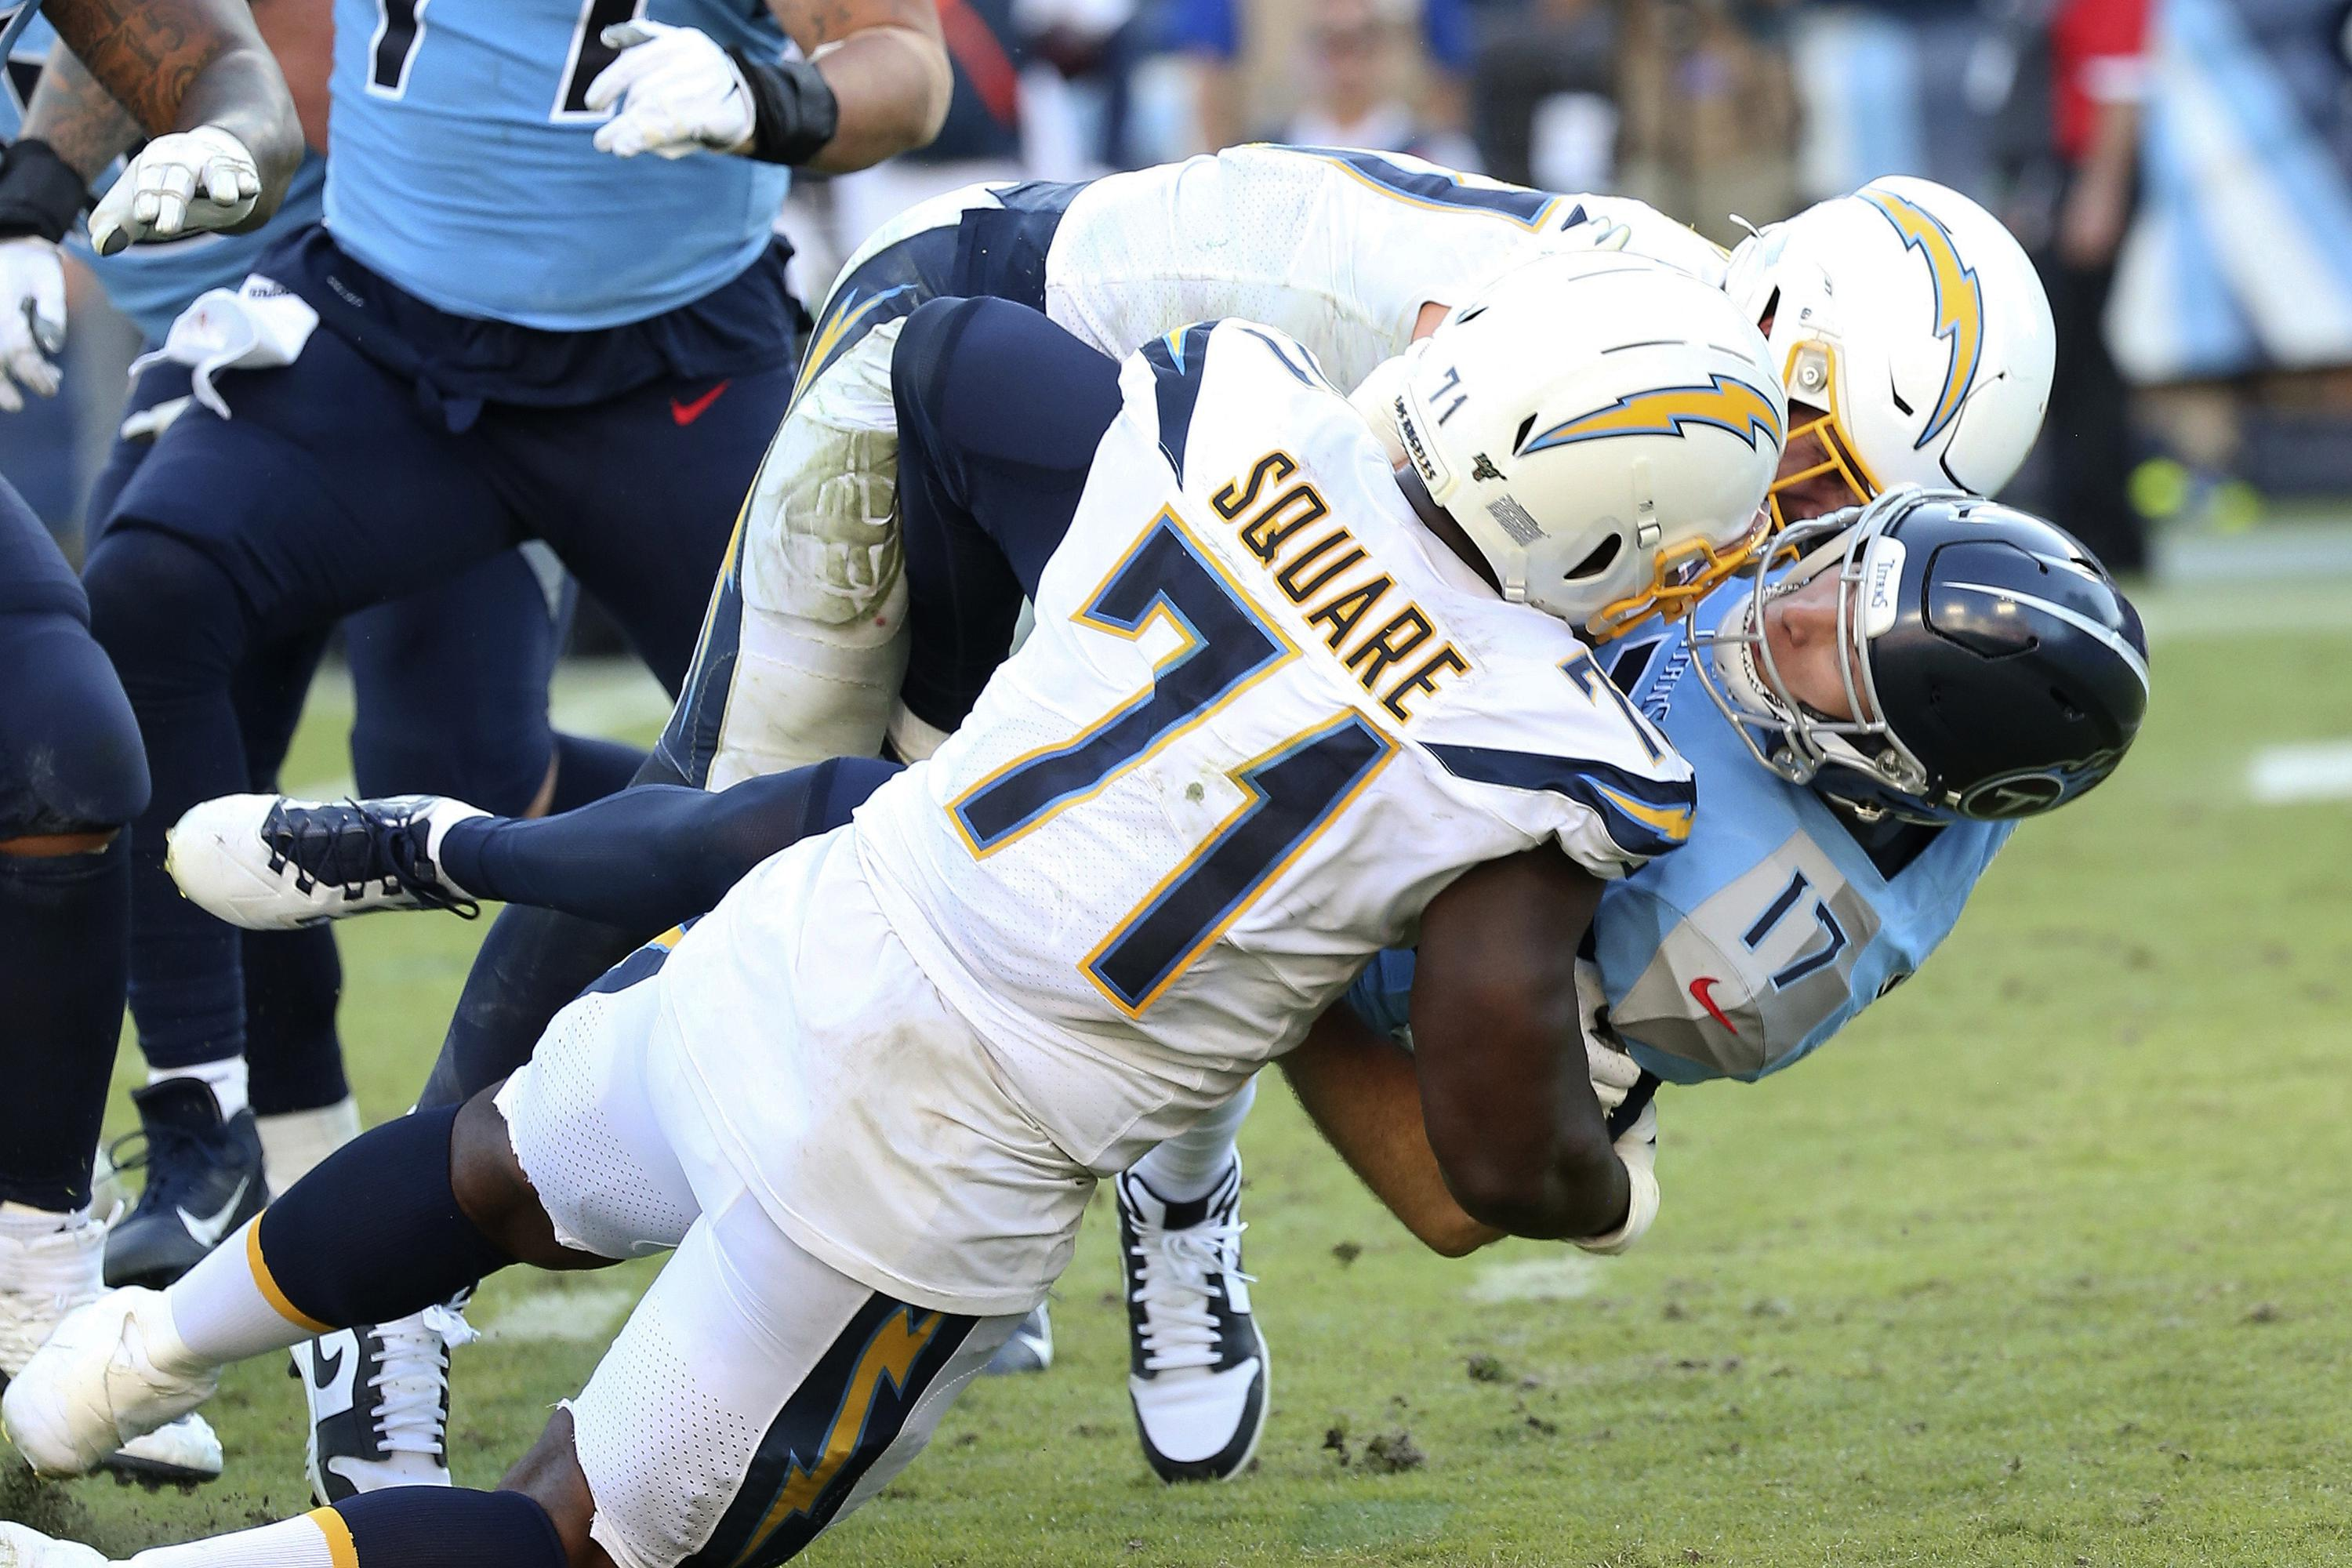 Browns sign veteran DT Damion Square, formerly with Chargers